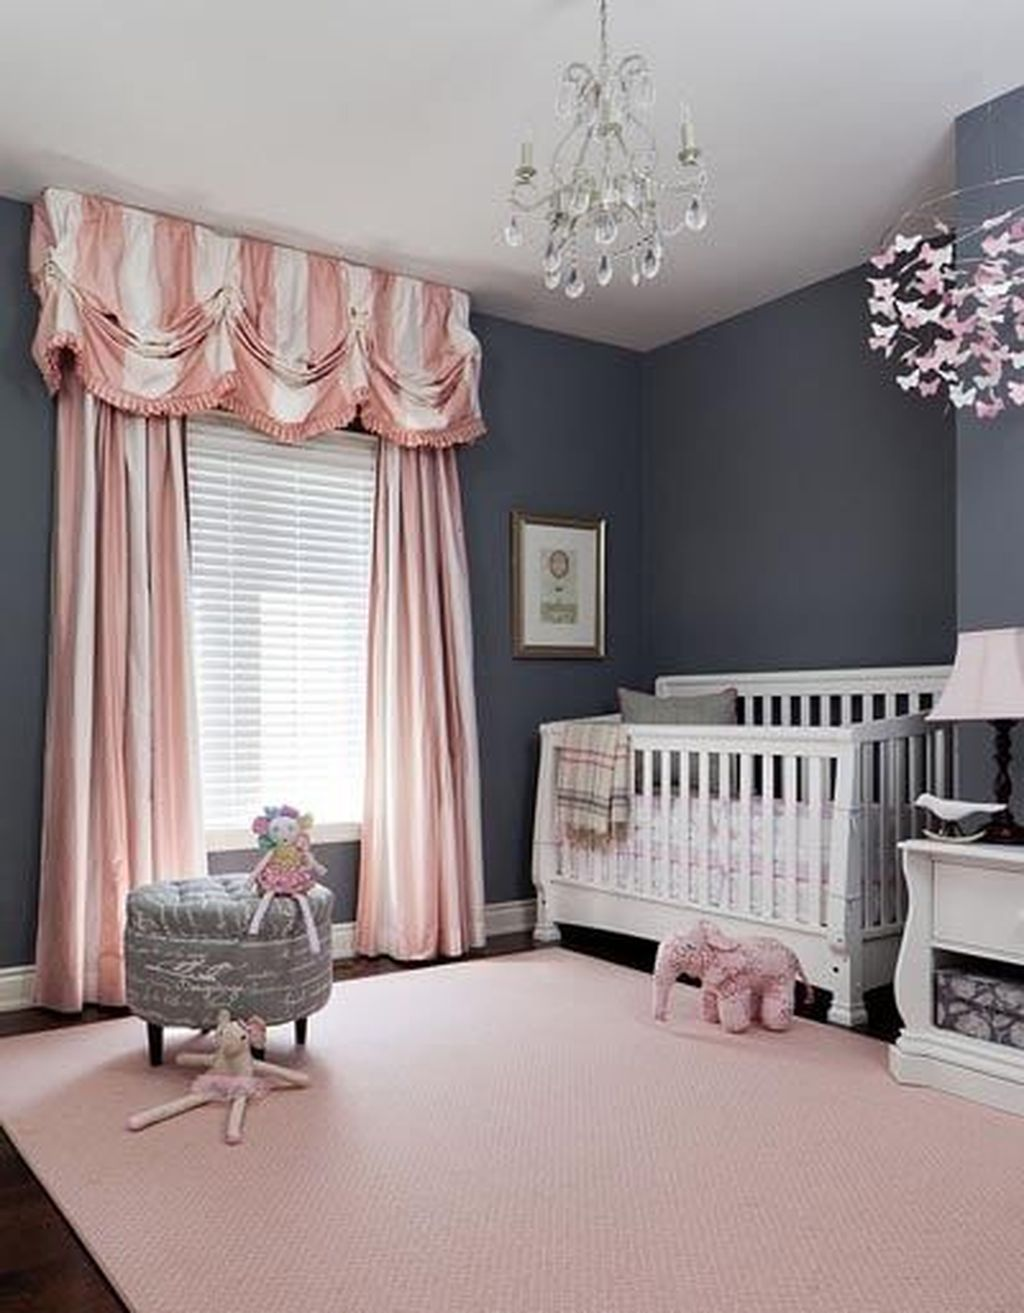 Lovely Baby Room Themes Decorating Ideas 27